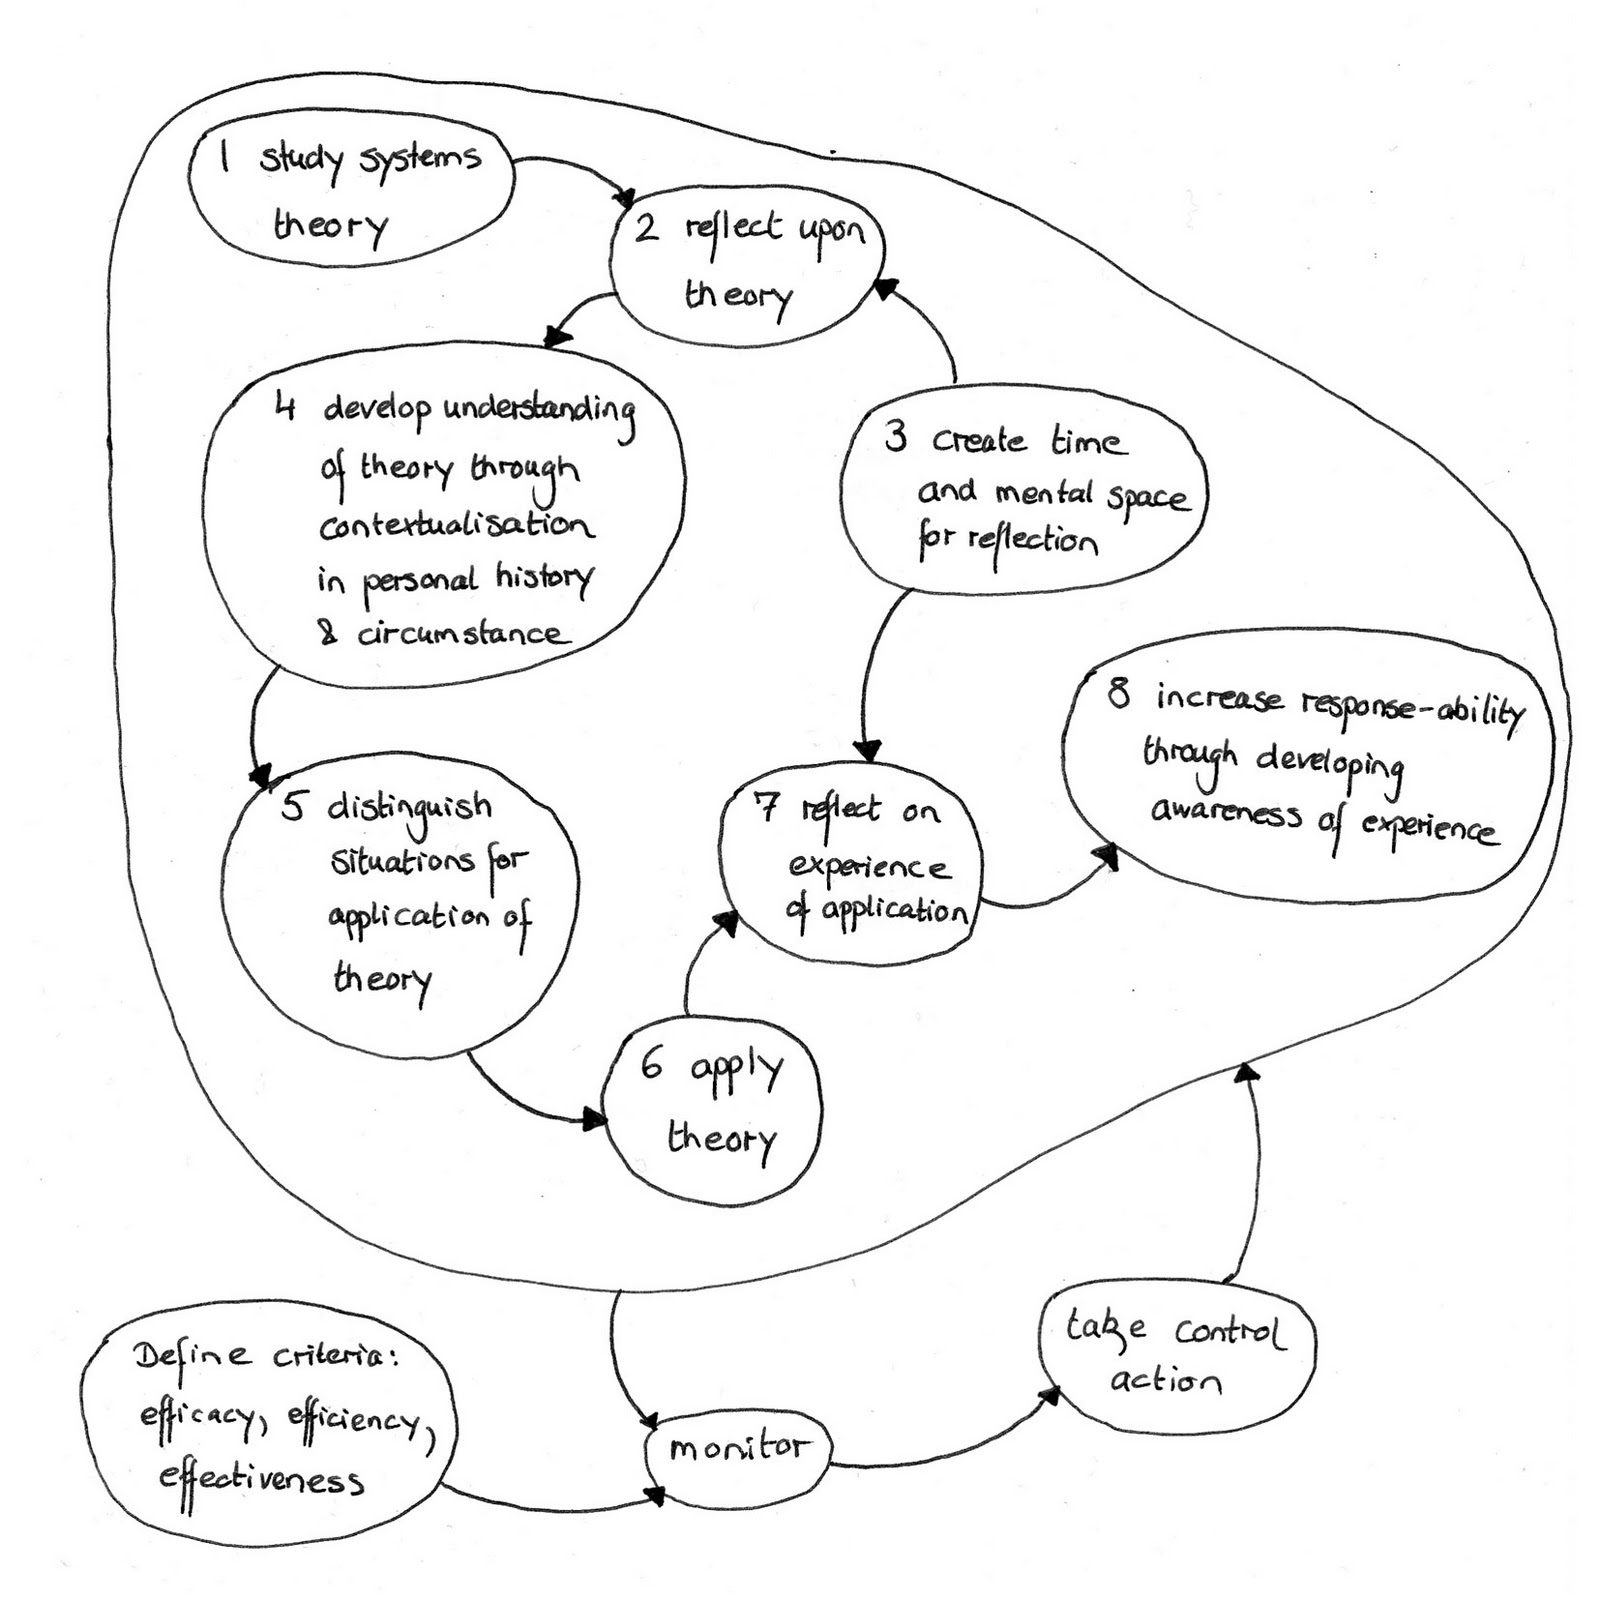 My Learning Contract As A Conceptual Model